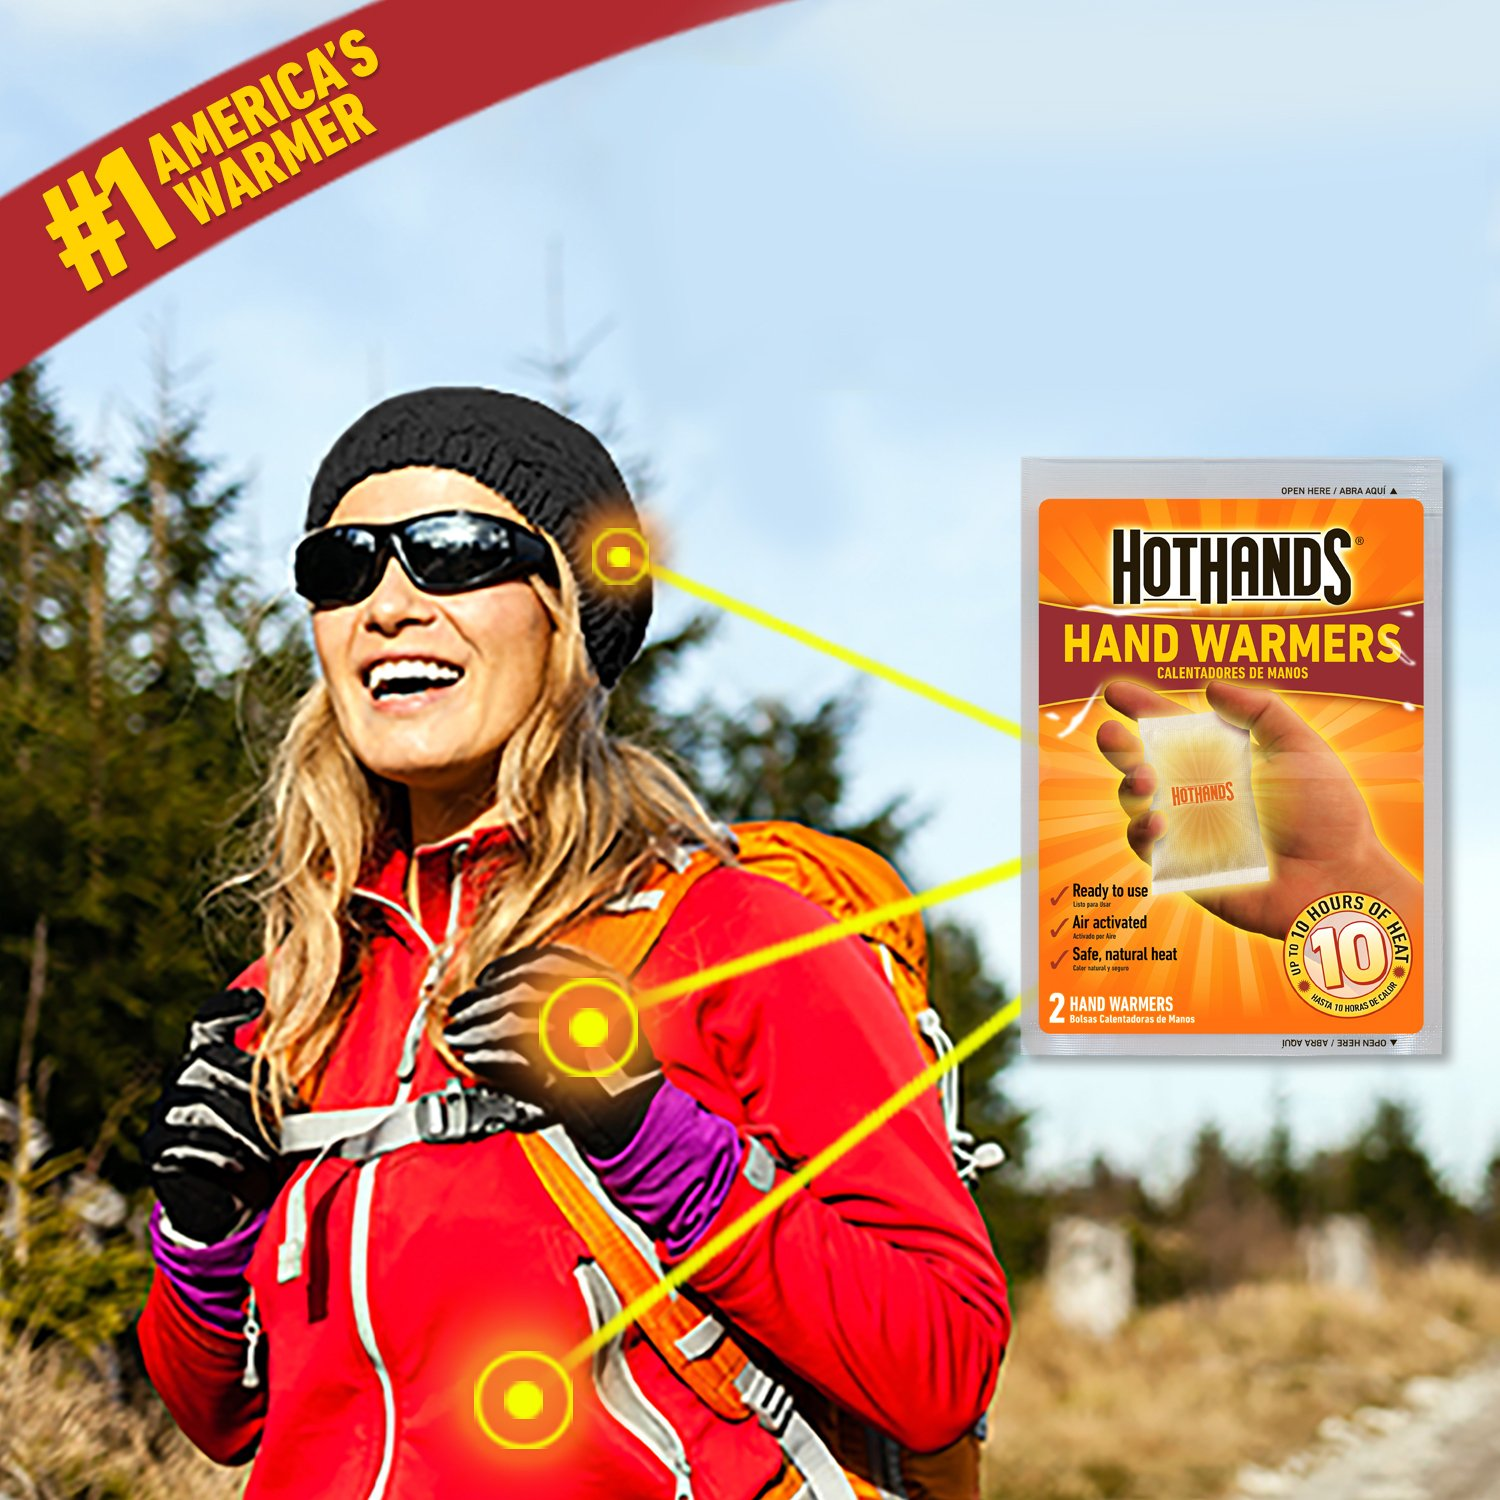 Up to 10 Hours of Heat HotHands Hand Warmers Long Lasting Safe Natural Odorless Air Activated Warmers 20 Pair Value Pack